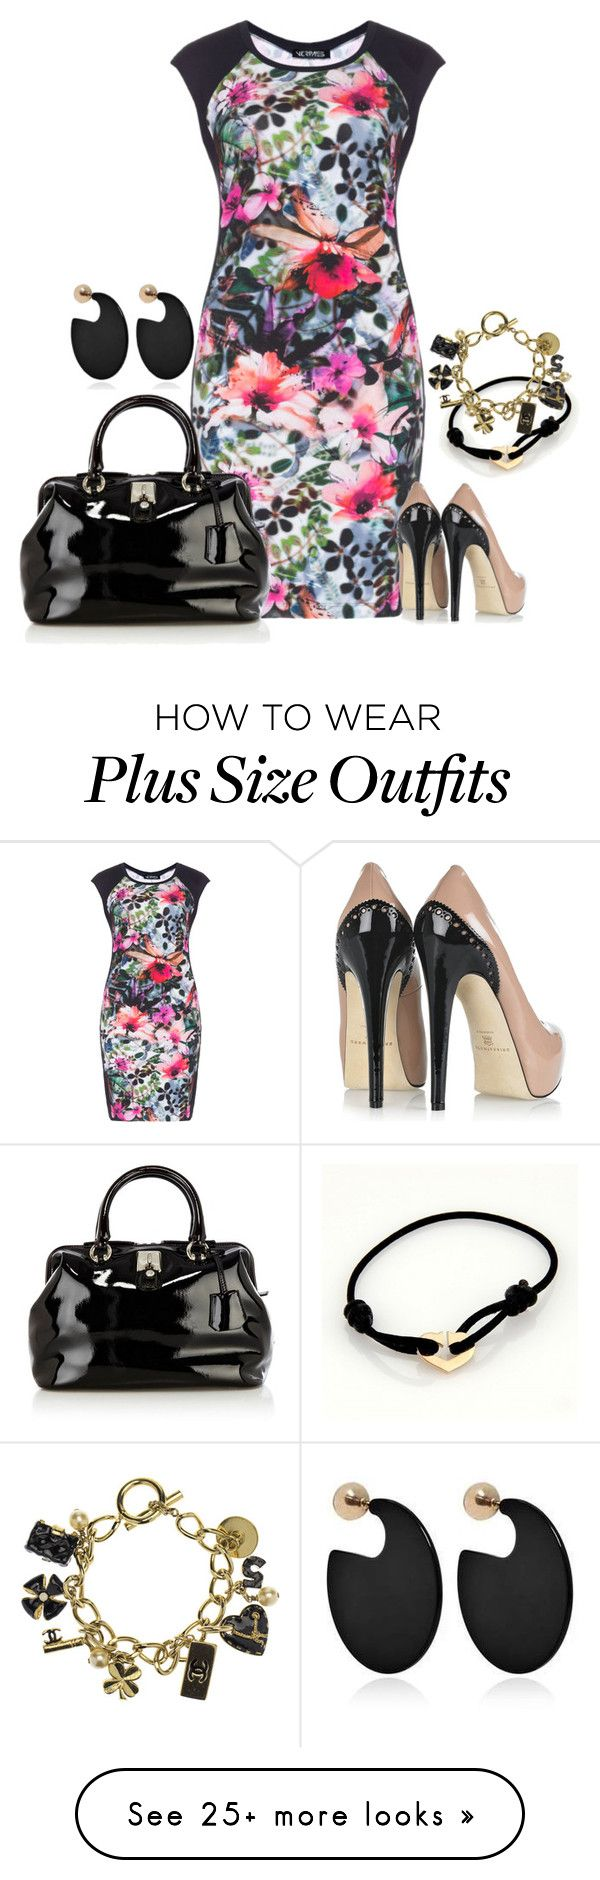 """Plus"" by kneesaasmom on Polyvore featuring Verpass, Brian Atwood, Karen Millen, Marni, Cartier and Chanel"